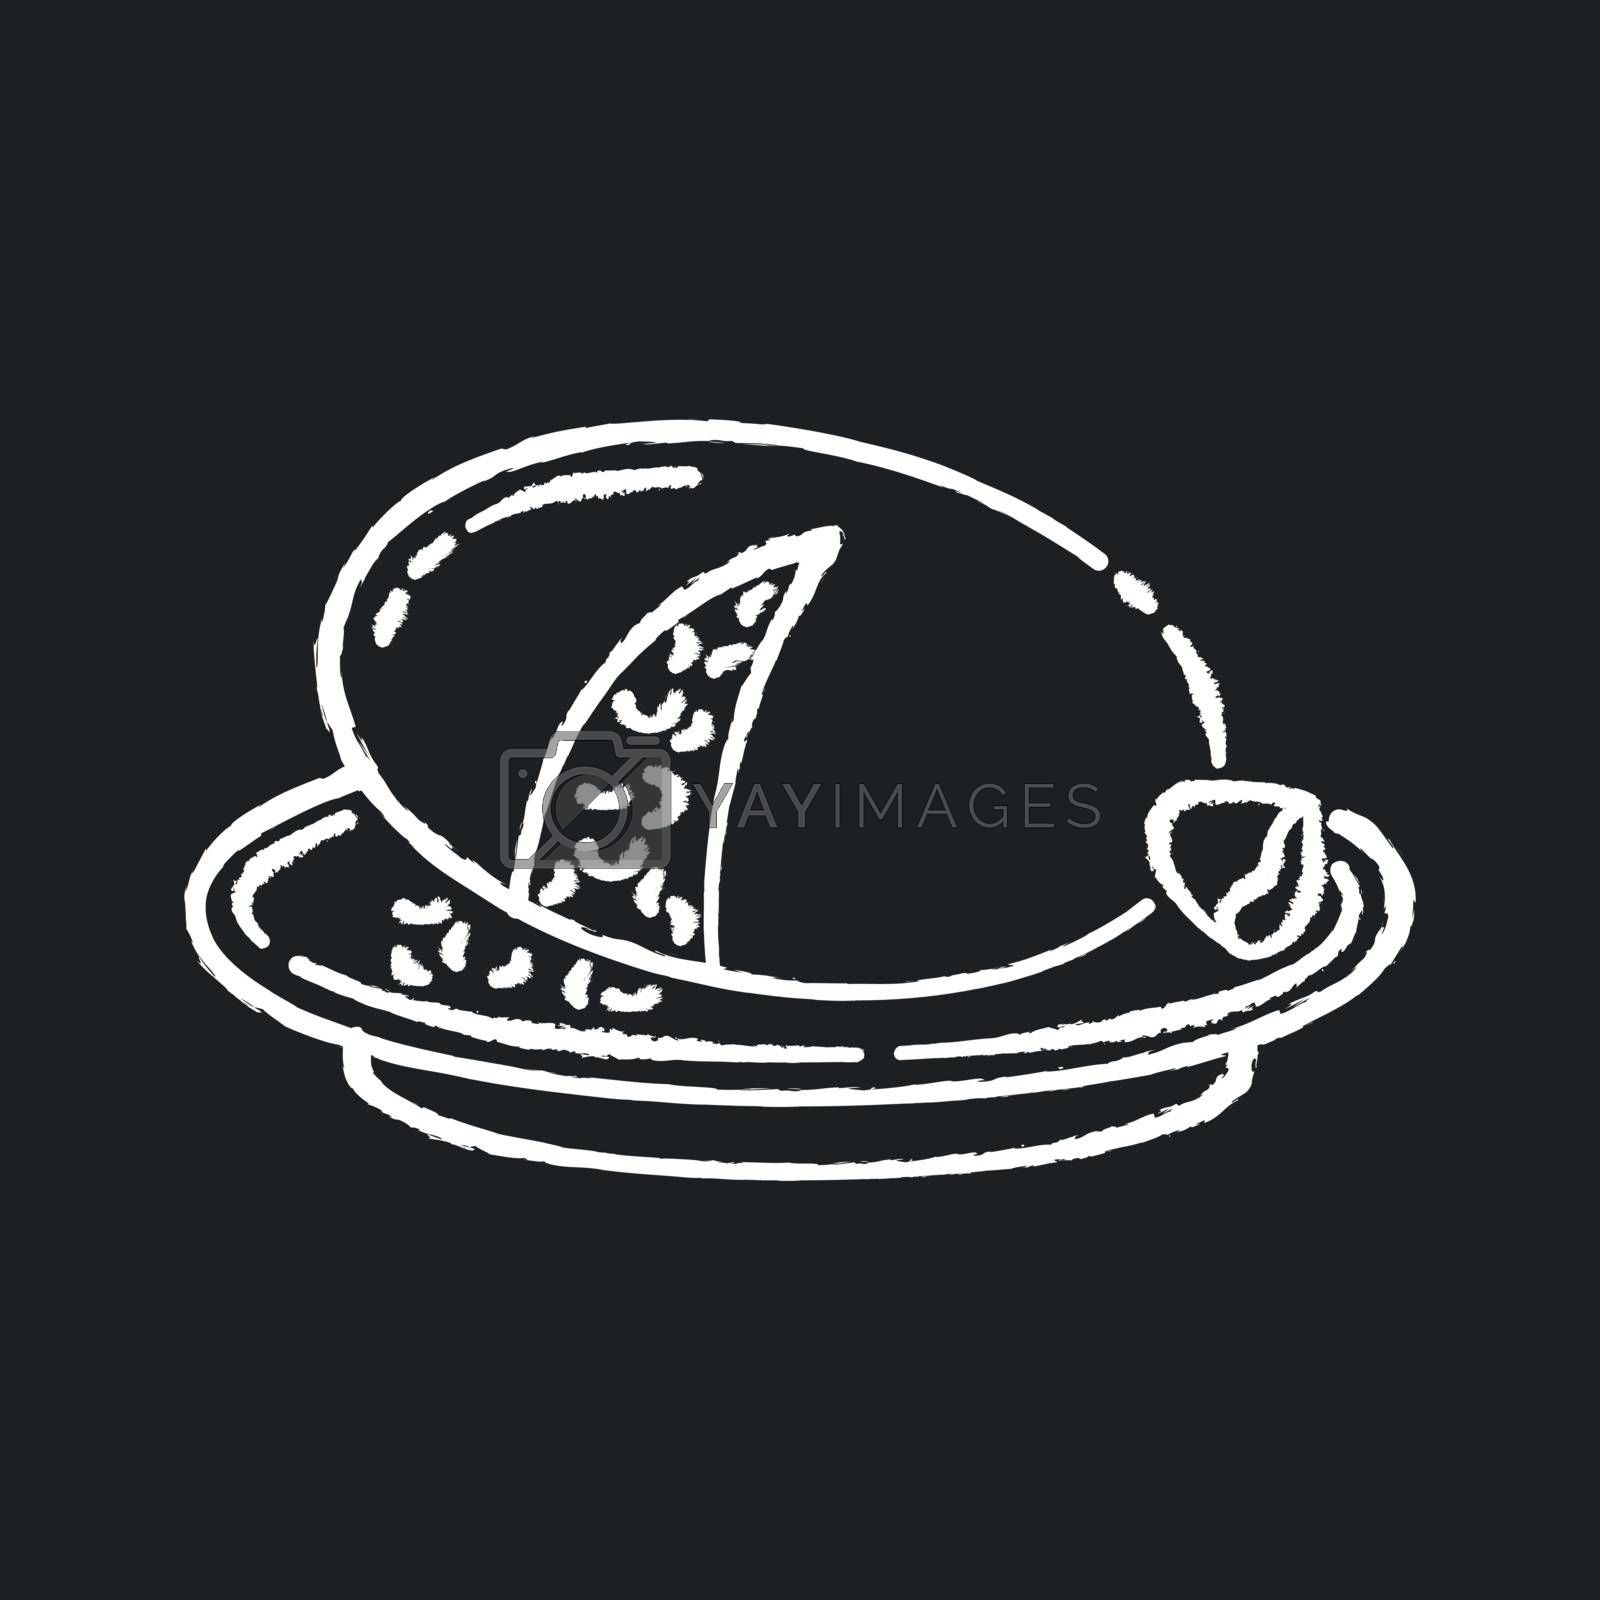 Haggis chalk white icon on black background. Scottish savory meal. National pudding recipe. Dish cooked in animal stomach. European mutton food. Isolated vector chalkboard illustration